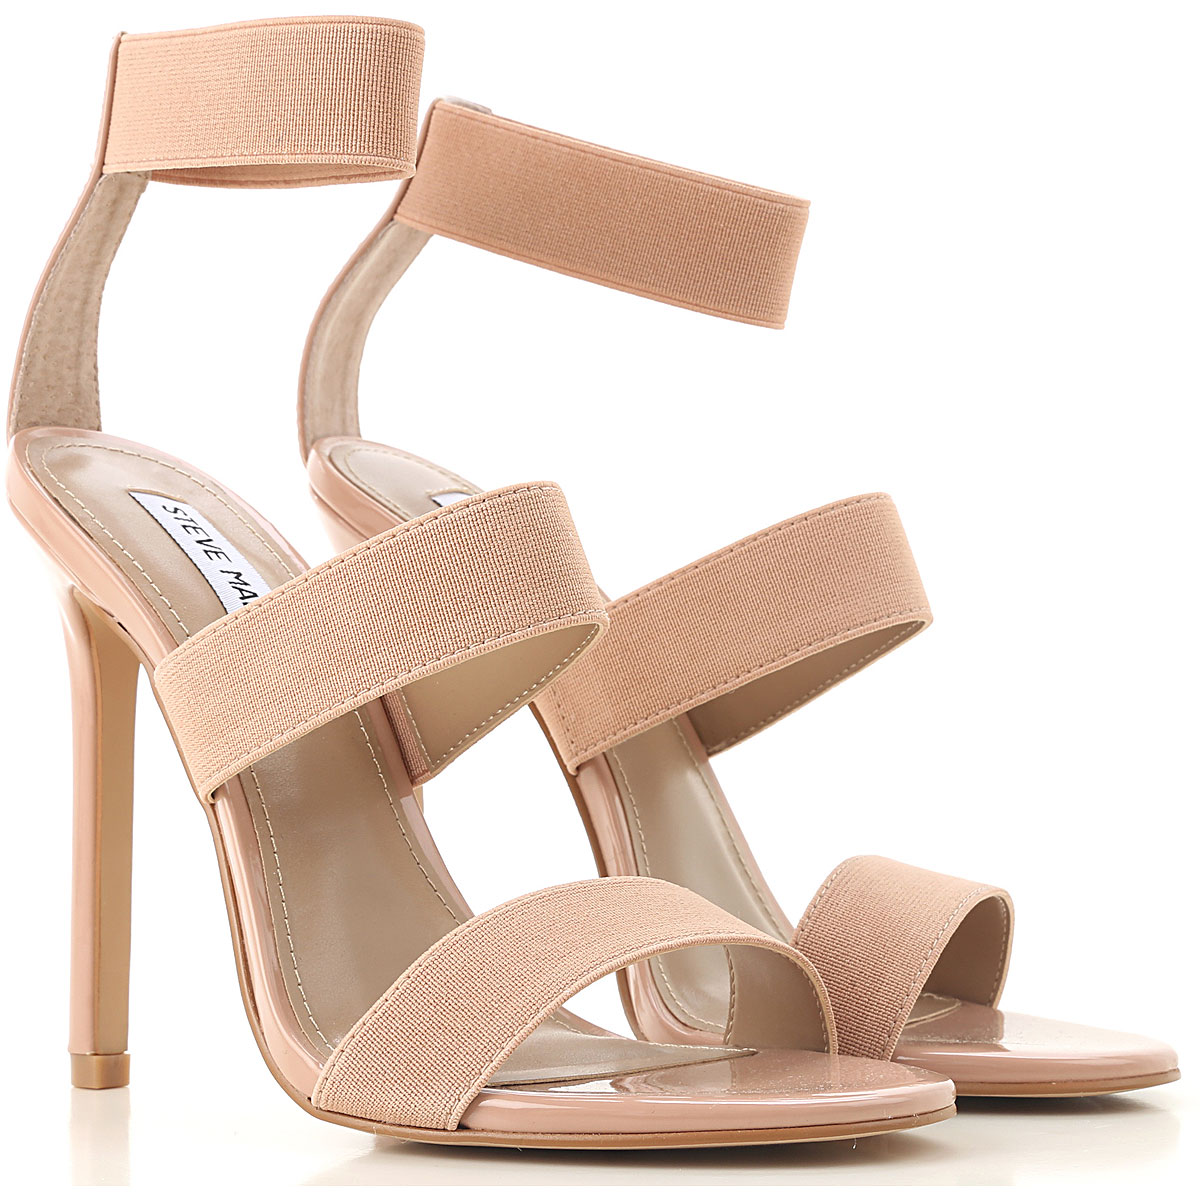 0a661aa98d6 Steve Madden. Shoes for Women